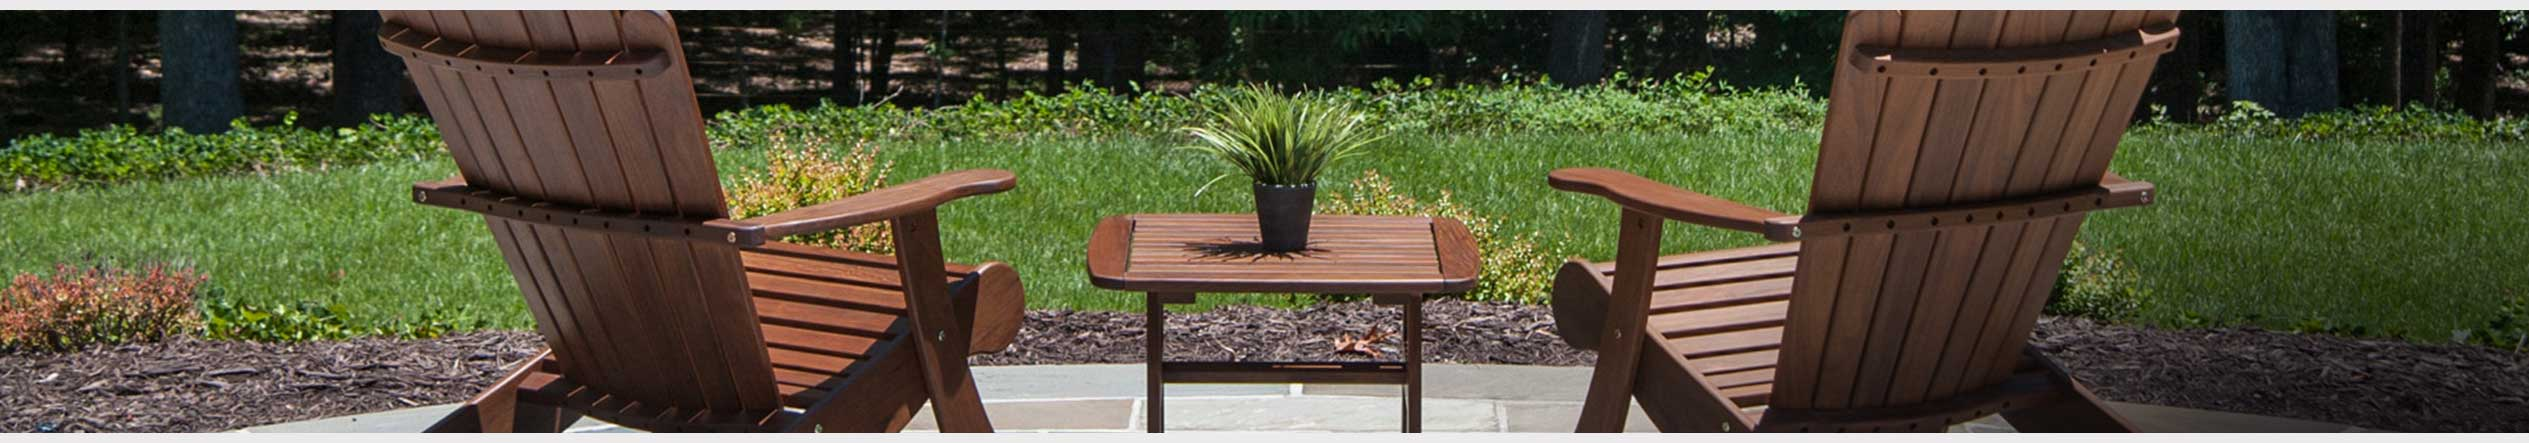 Outdoor Accents At Jordan S Furniture Store In Ma Nh Ri And Ct - Garden Furniture Clearance Taunton